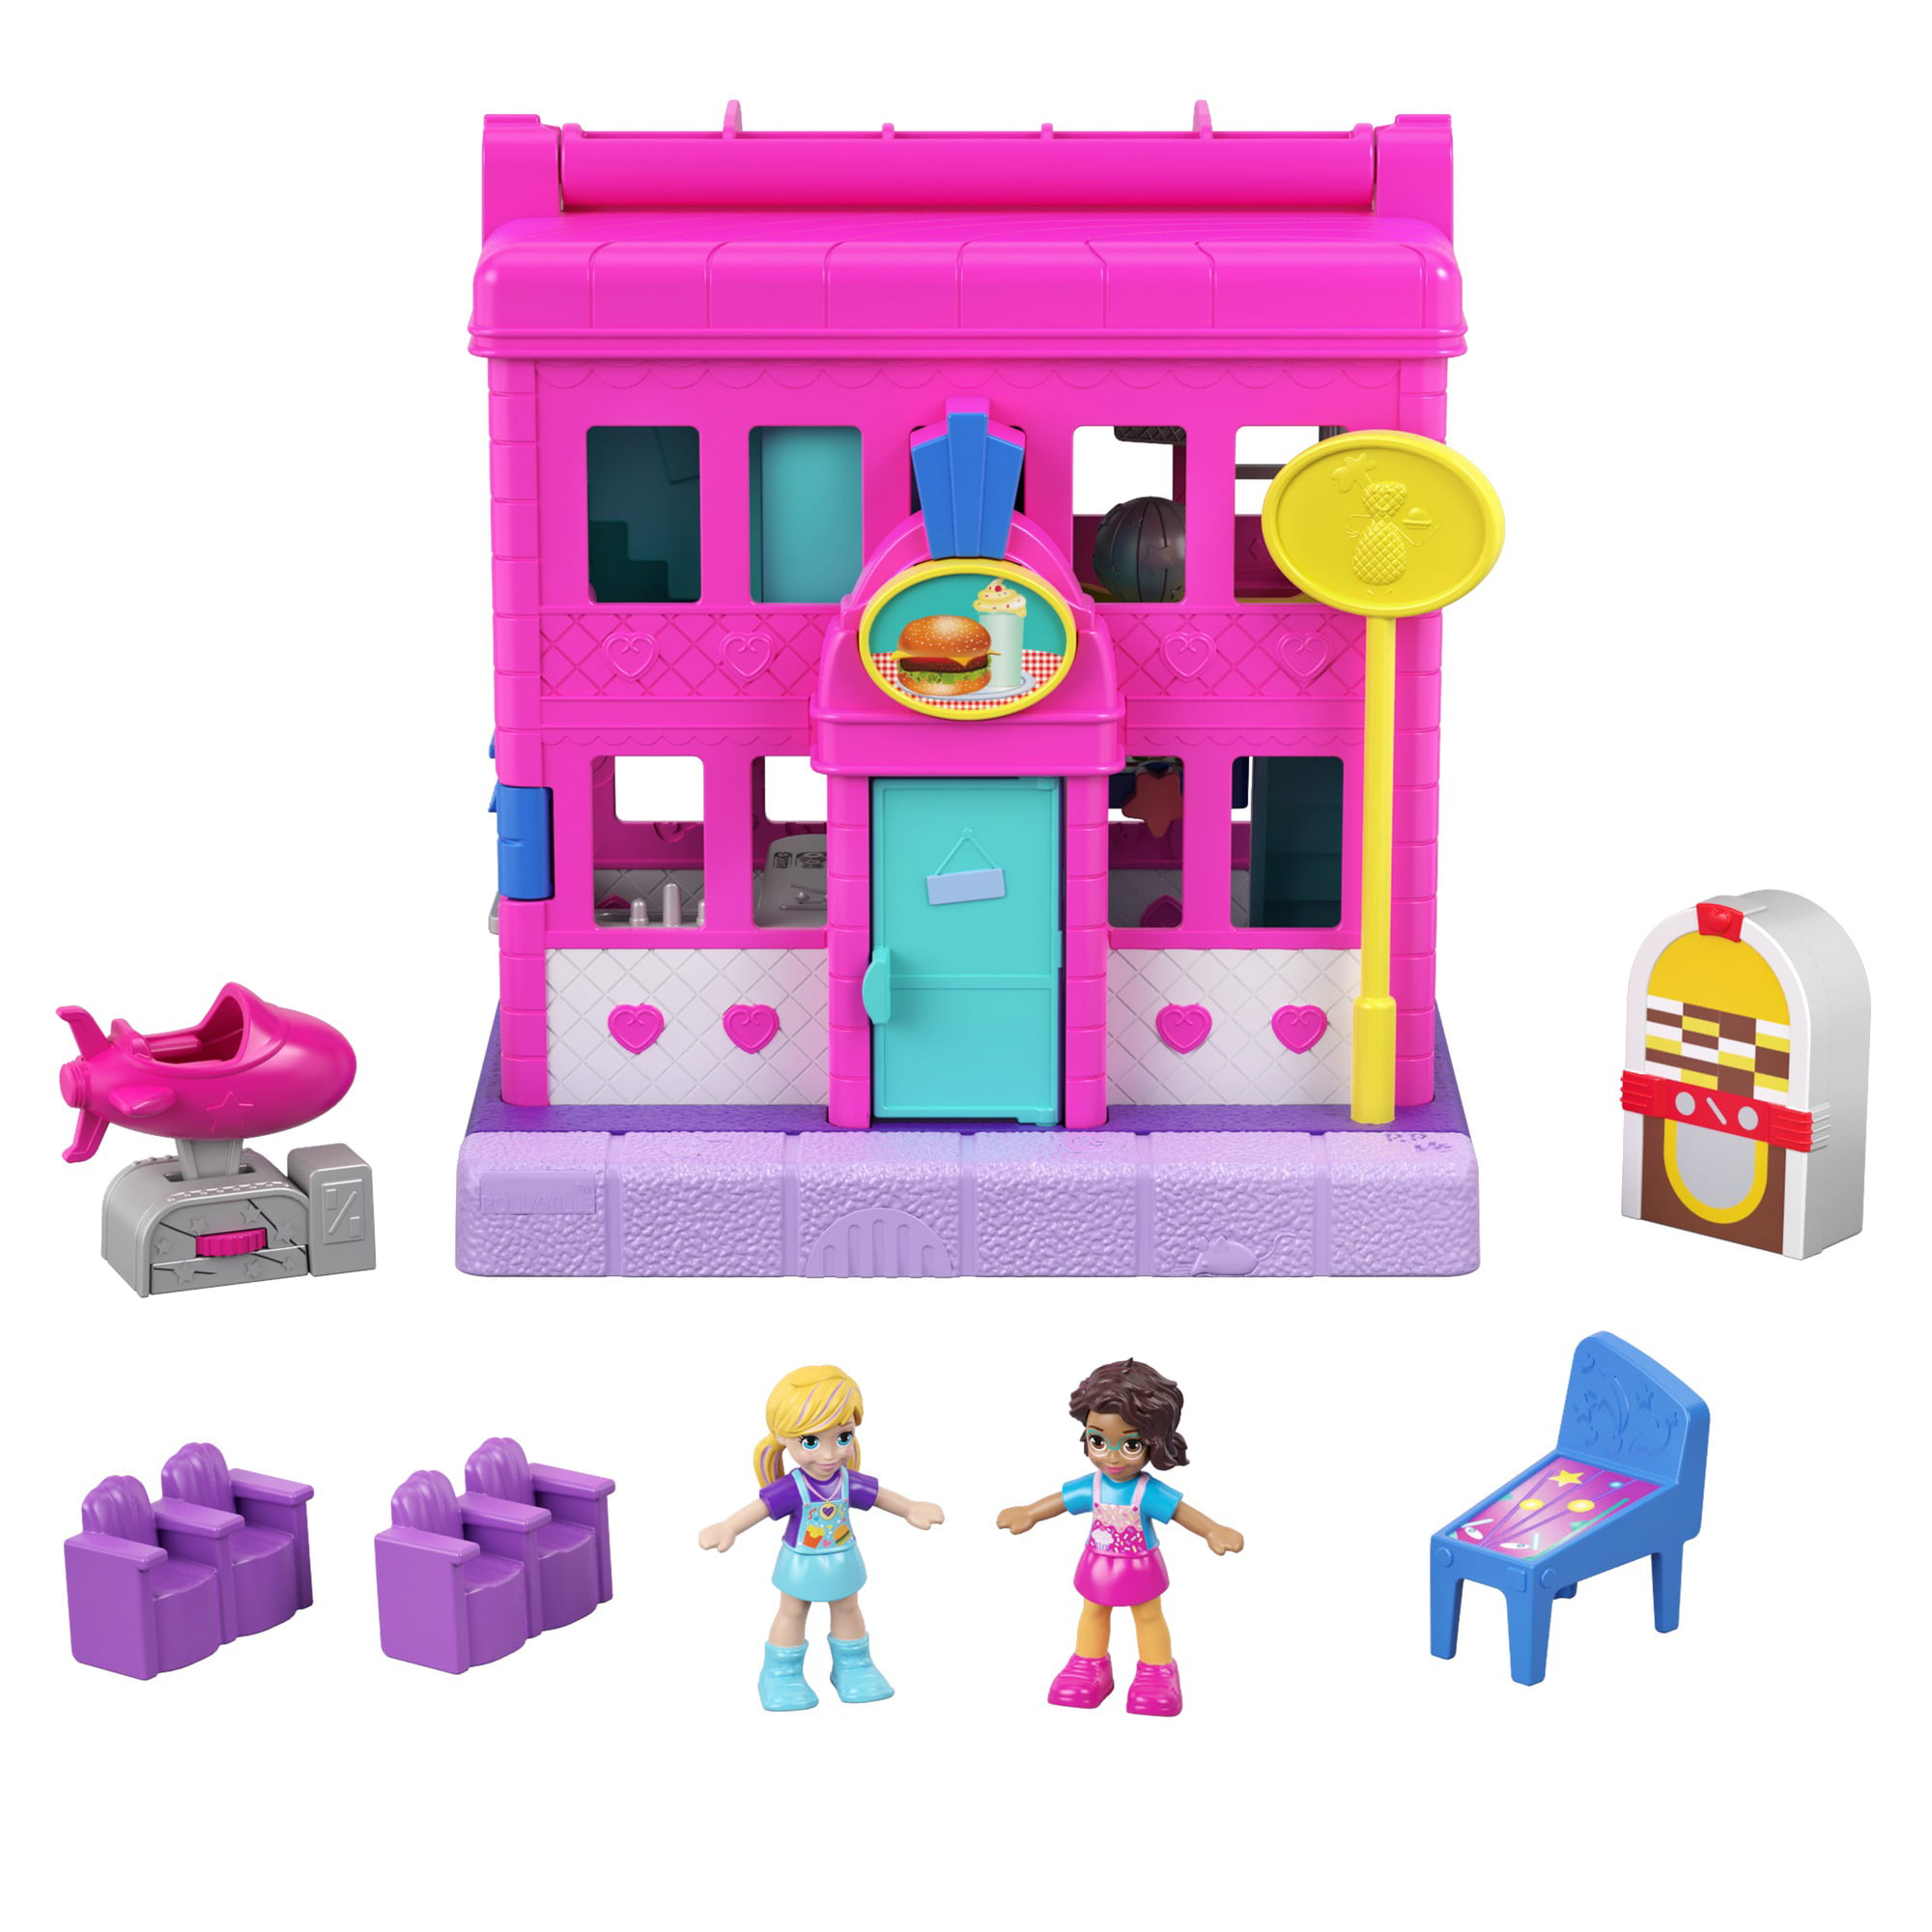 2 Micro Dolls Pollyville Pet Place with 4 Floors of Fun 1 Sticker Sheet and 5 Micro Accessories